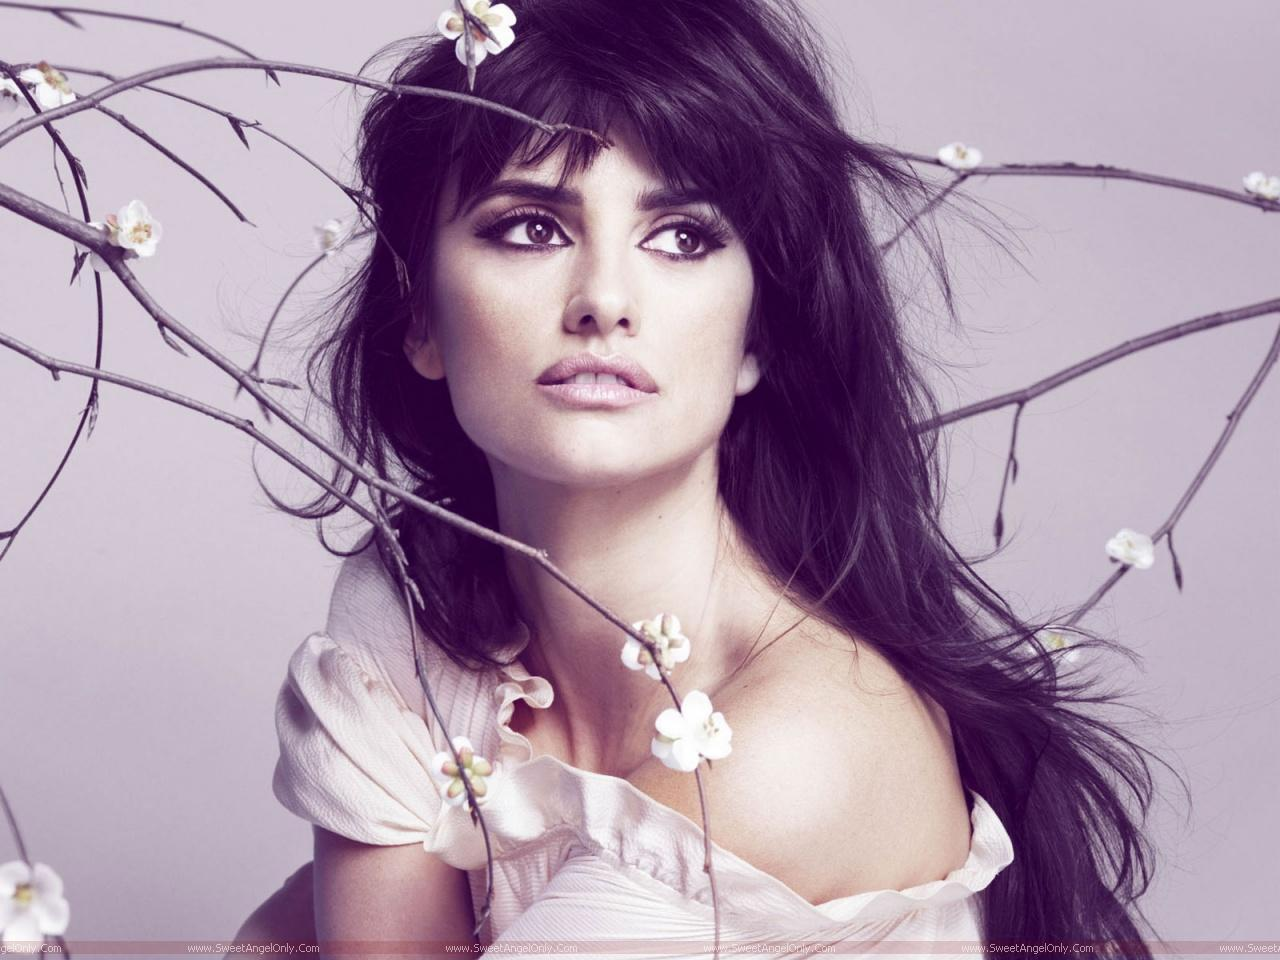 http://3.bp.blogspot.com/-zAGs4OR2Rq4/Tlpdc66LJAI/AAAAAAAAJ-Y/AiPkWBGdIMw/s1600/Penelope-Cruz-beautiful-photo-shoot.jpg